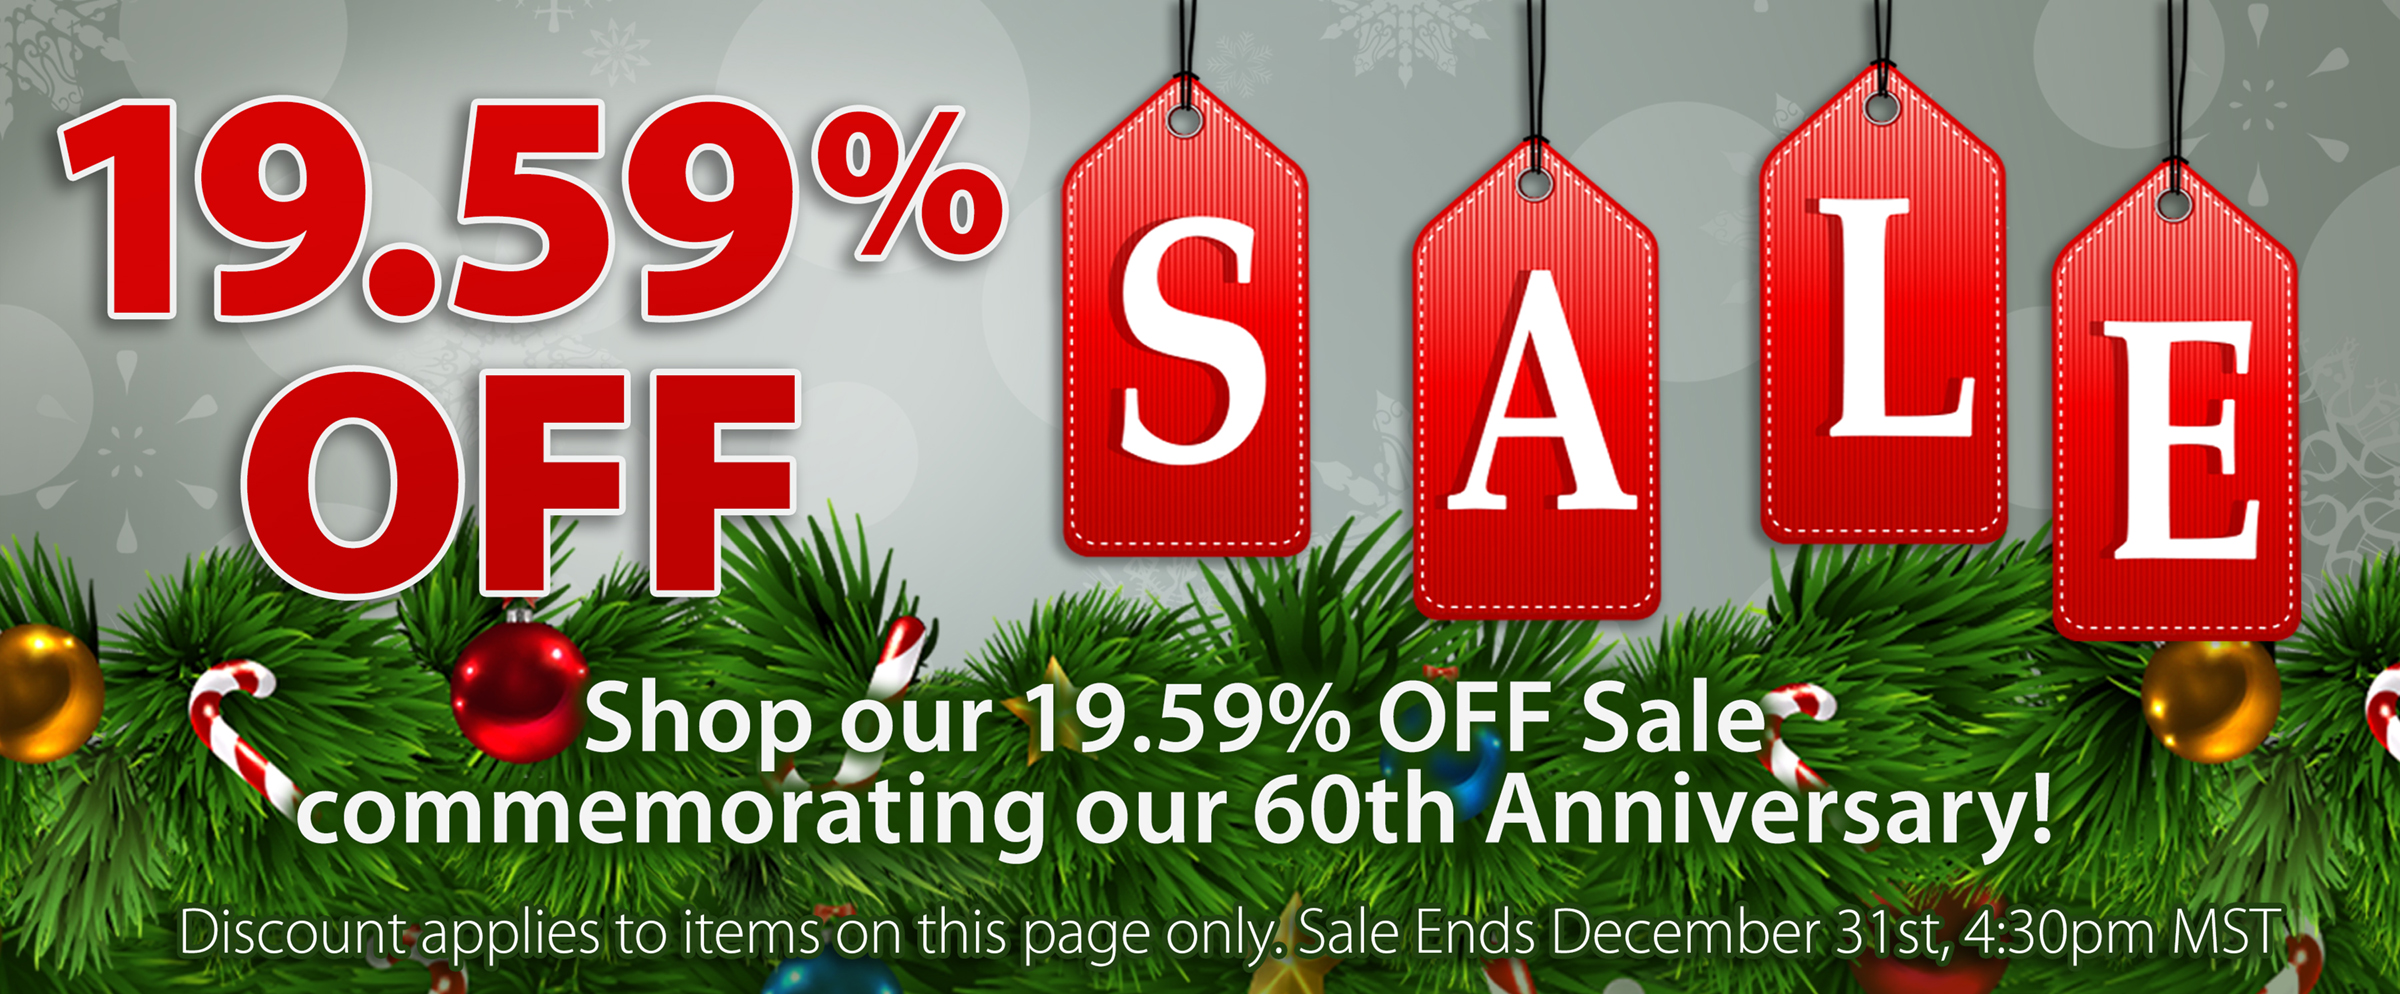 Westone Holiday Sale